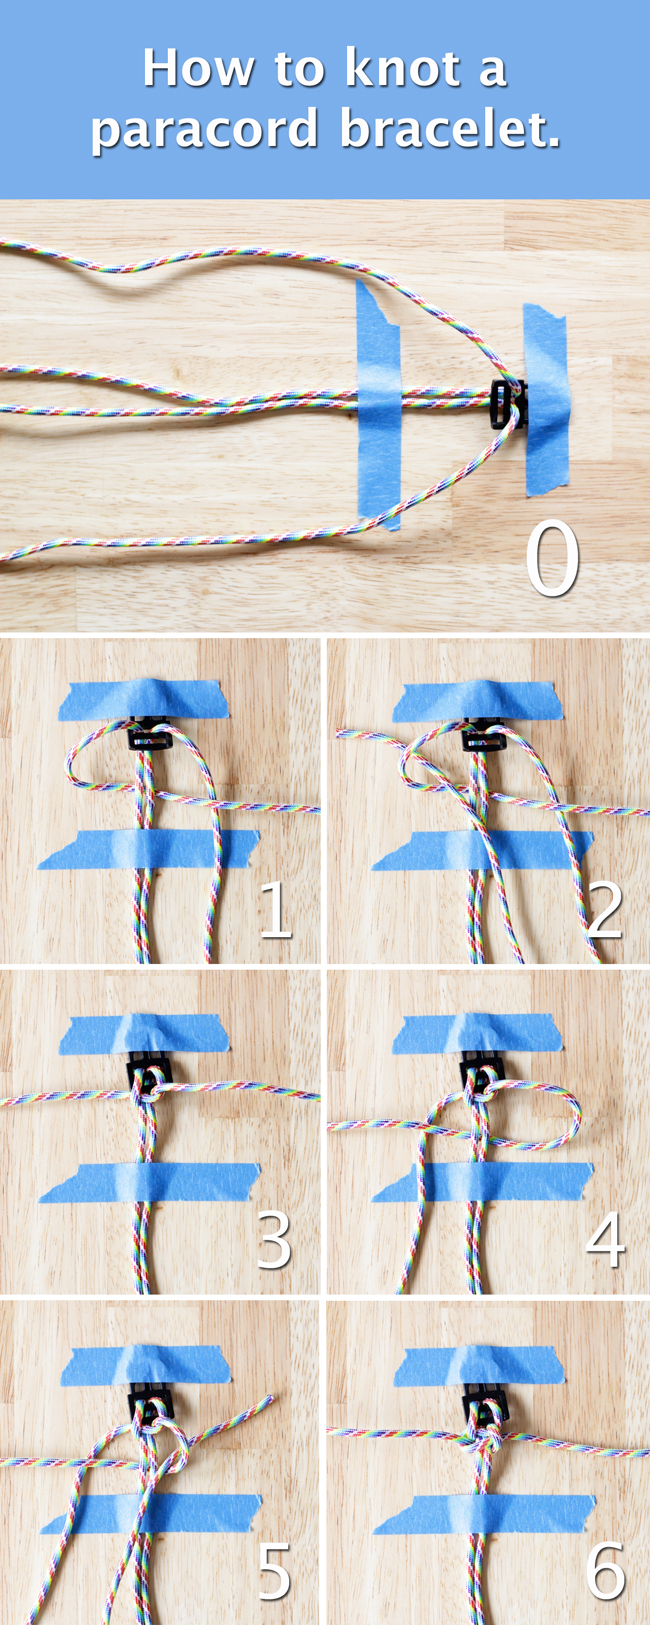 How to Knot a Paracord Bracelet or Collar - Tutorial at HandsOccupied.com